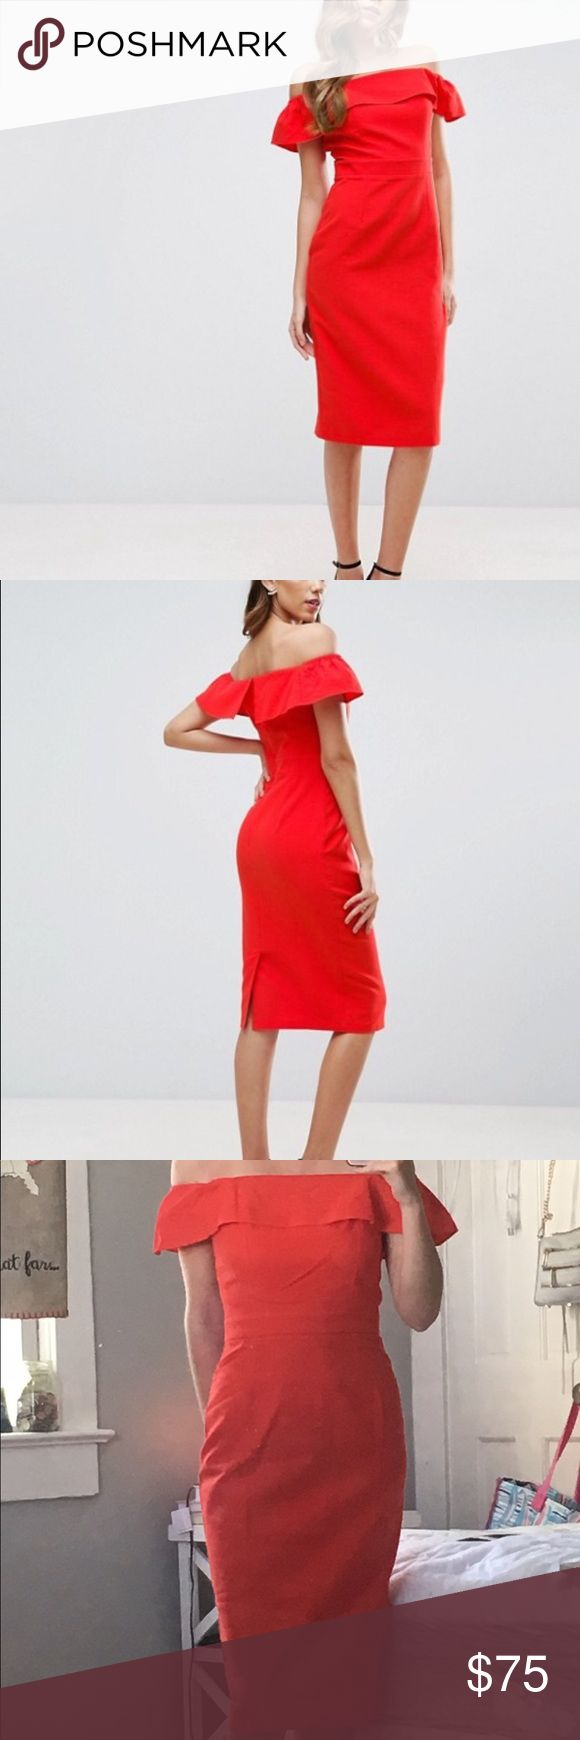 Red Bardot midi dress Brand new! (Dress being sold is not the one in try on picture) Just received the wrong size and have no use for it. Tags attached and has been sitting in a bag. Runs true to size-I am a regular size 2 and the fit in my size is perfect. Great for wedding season! ASOS Dresses Midi